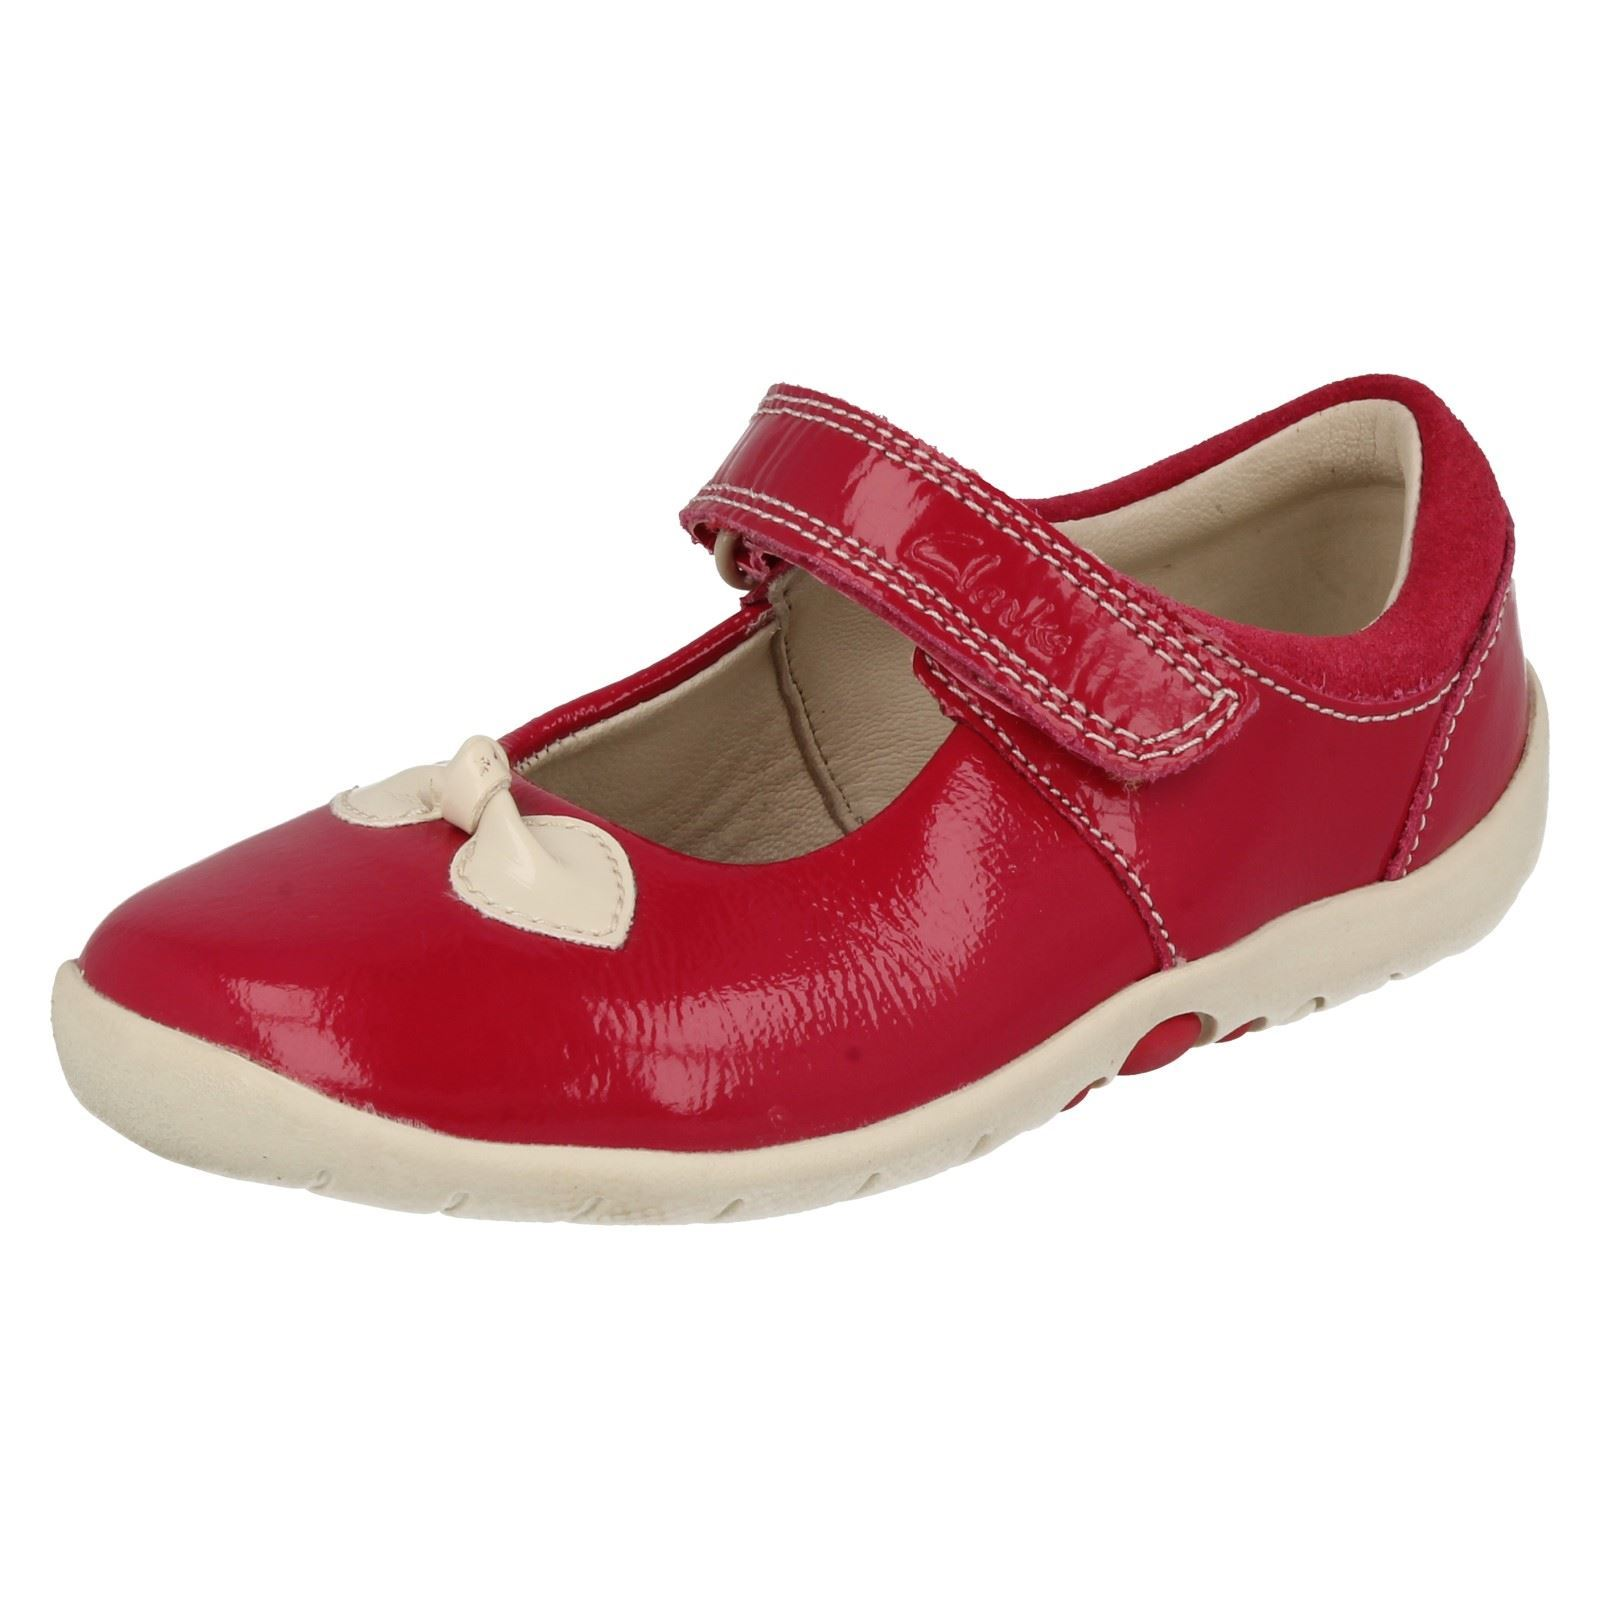 6bf0dc237e45 Girls Clarks Softly Bow FST Berry Pink Patent Leather Velcro First Walking  Shoes US 4.5 F Fitting. About this product. Picture 1 of 10  Picture 2 of  10 ...